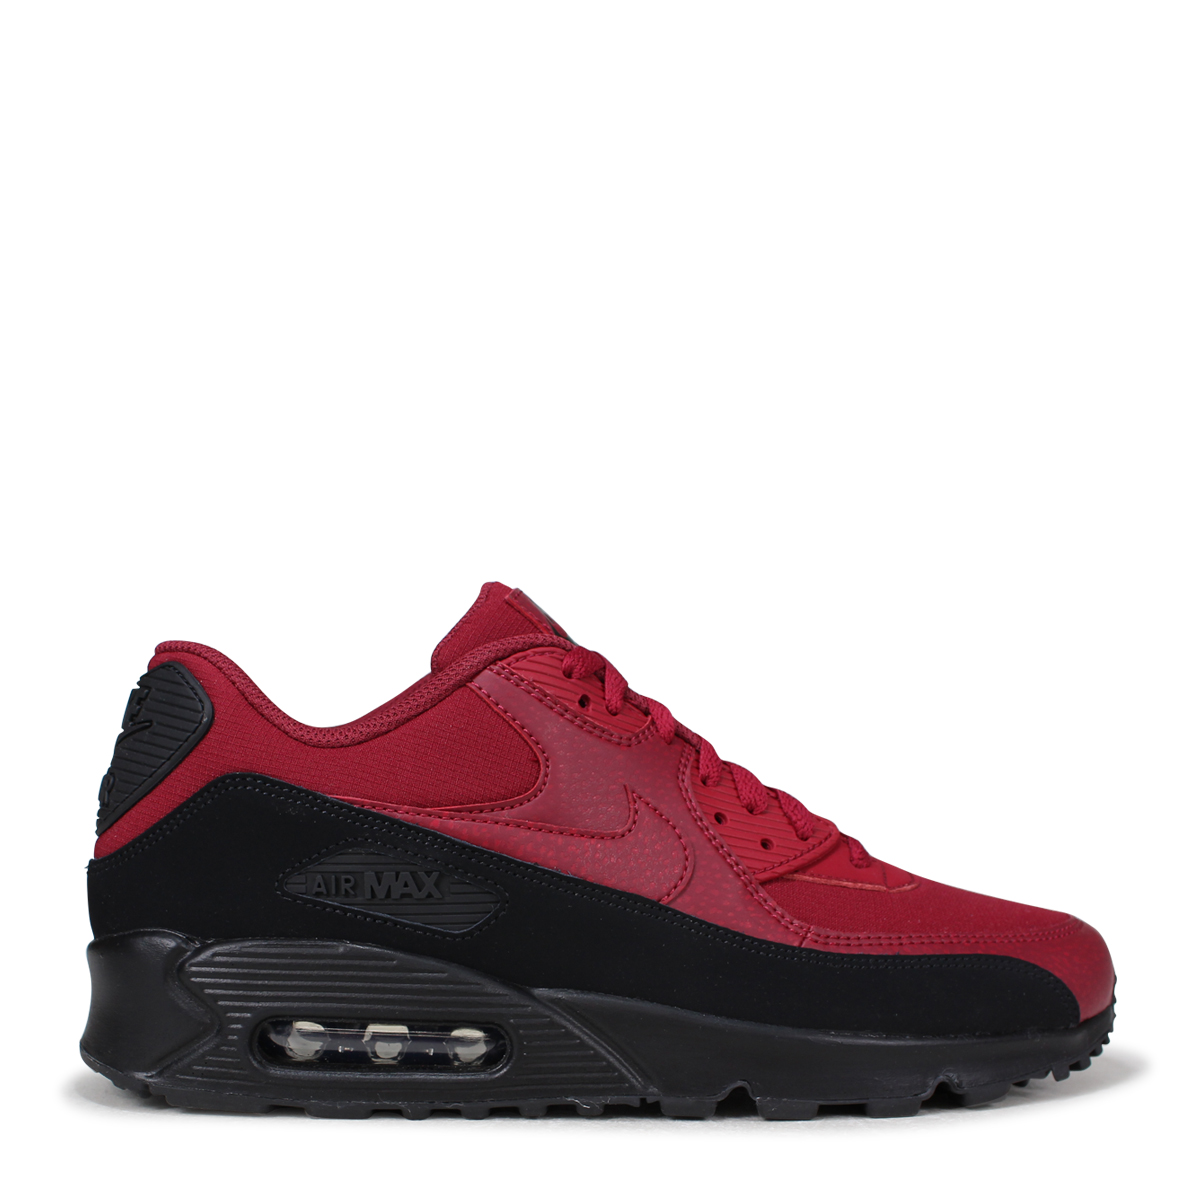 sports shoes 70159 4c1ab NIKE AIR MAX 90 ESSENTIAL Kie Ney AMAX 90 essential sneakers men AJ1285-010  red  7 13 Shinnyu load   187